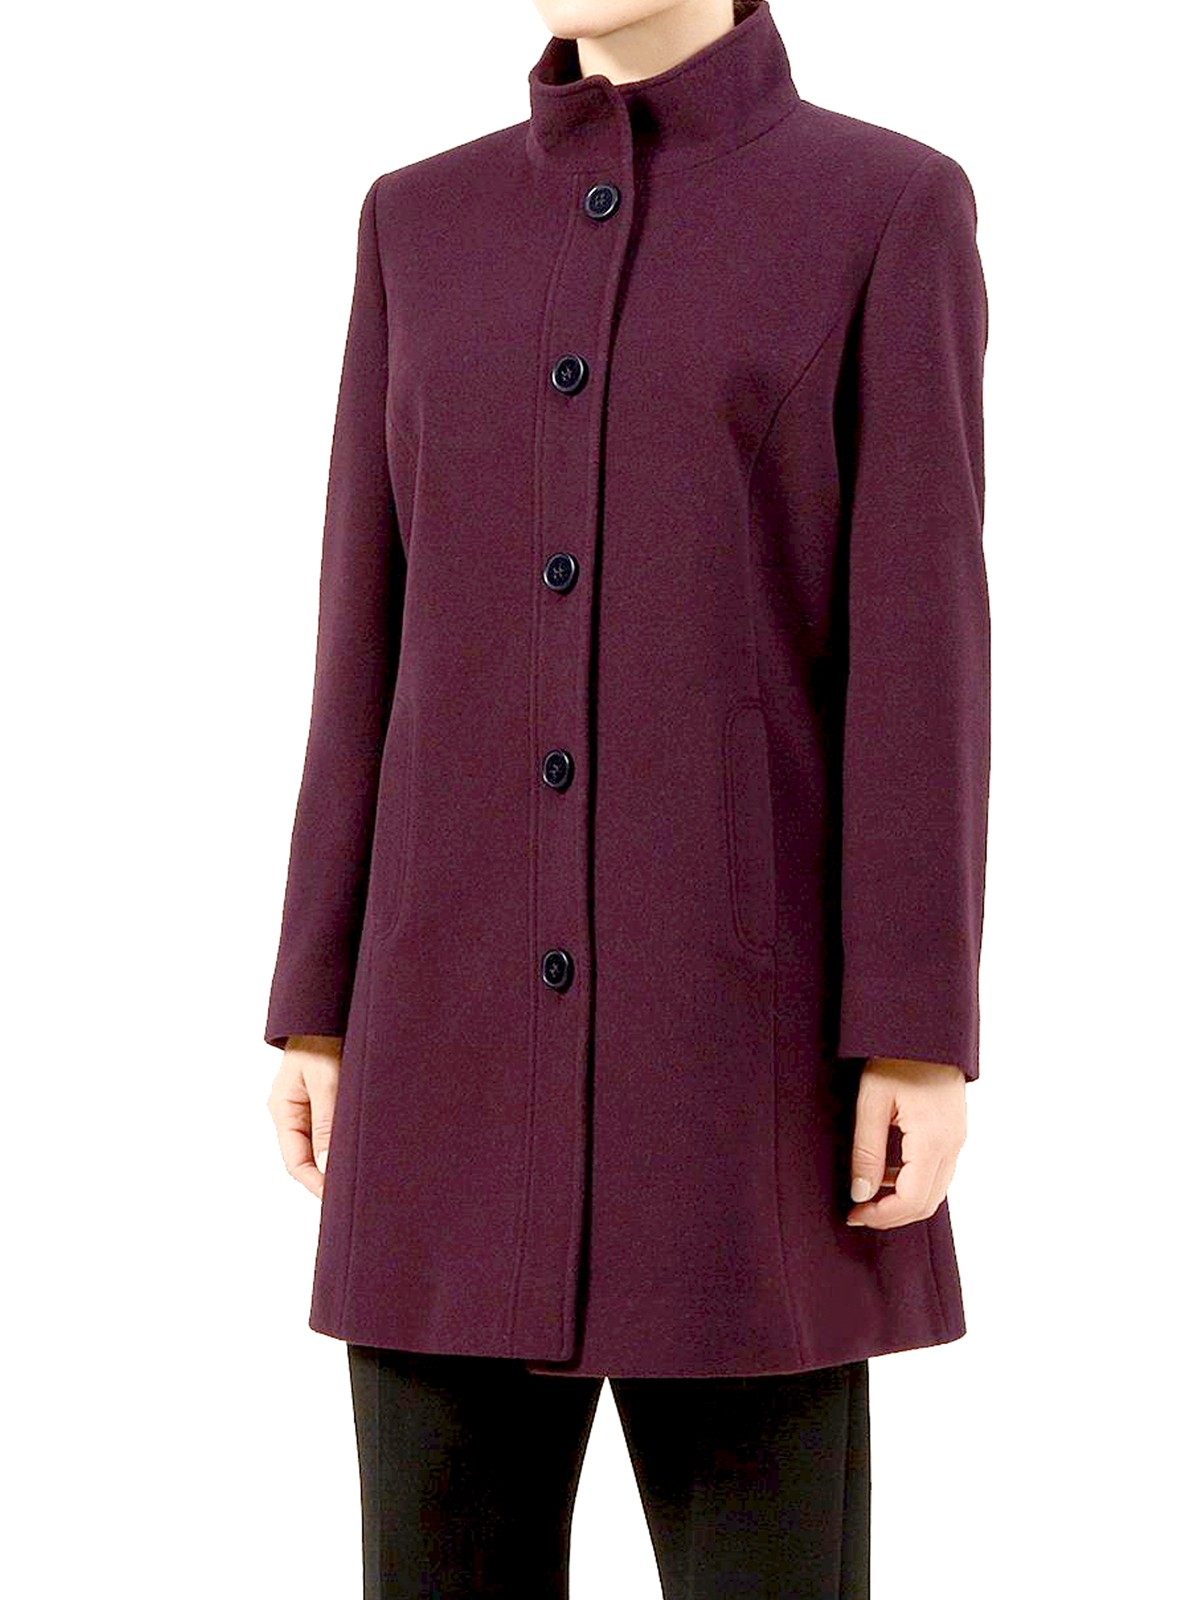 Women's Coats & Jackets Offers () Your path to this page. Select a link to go back to a previous page. Homepage; Special Offers Plus Size. Petite Save an additional 10% off Hobbs reduced to clear lines until 22/10/